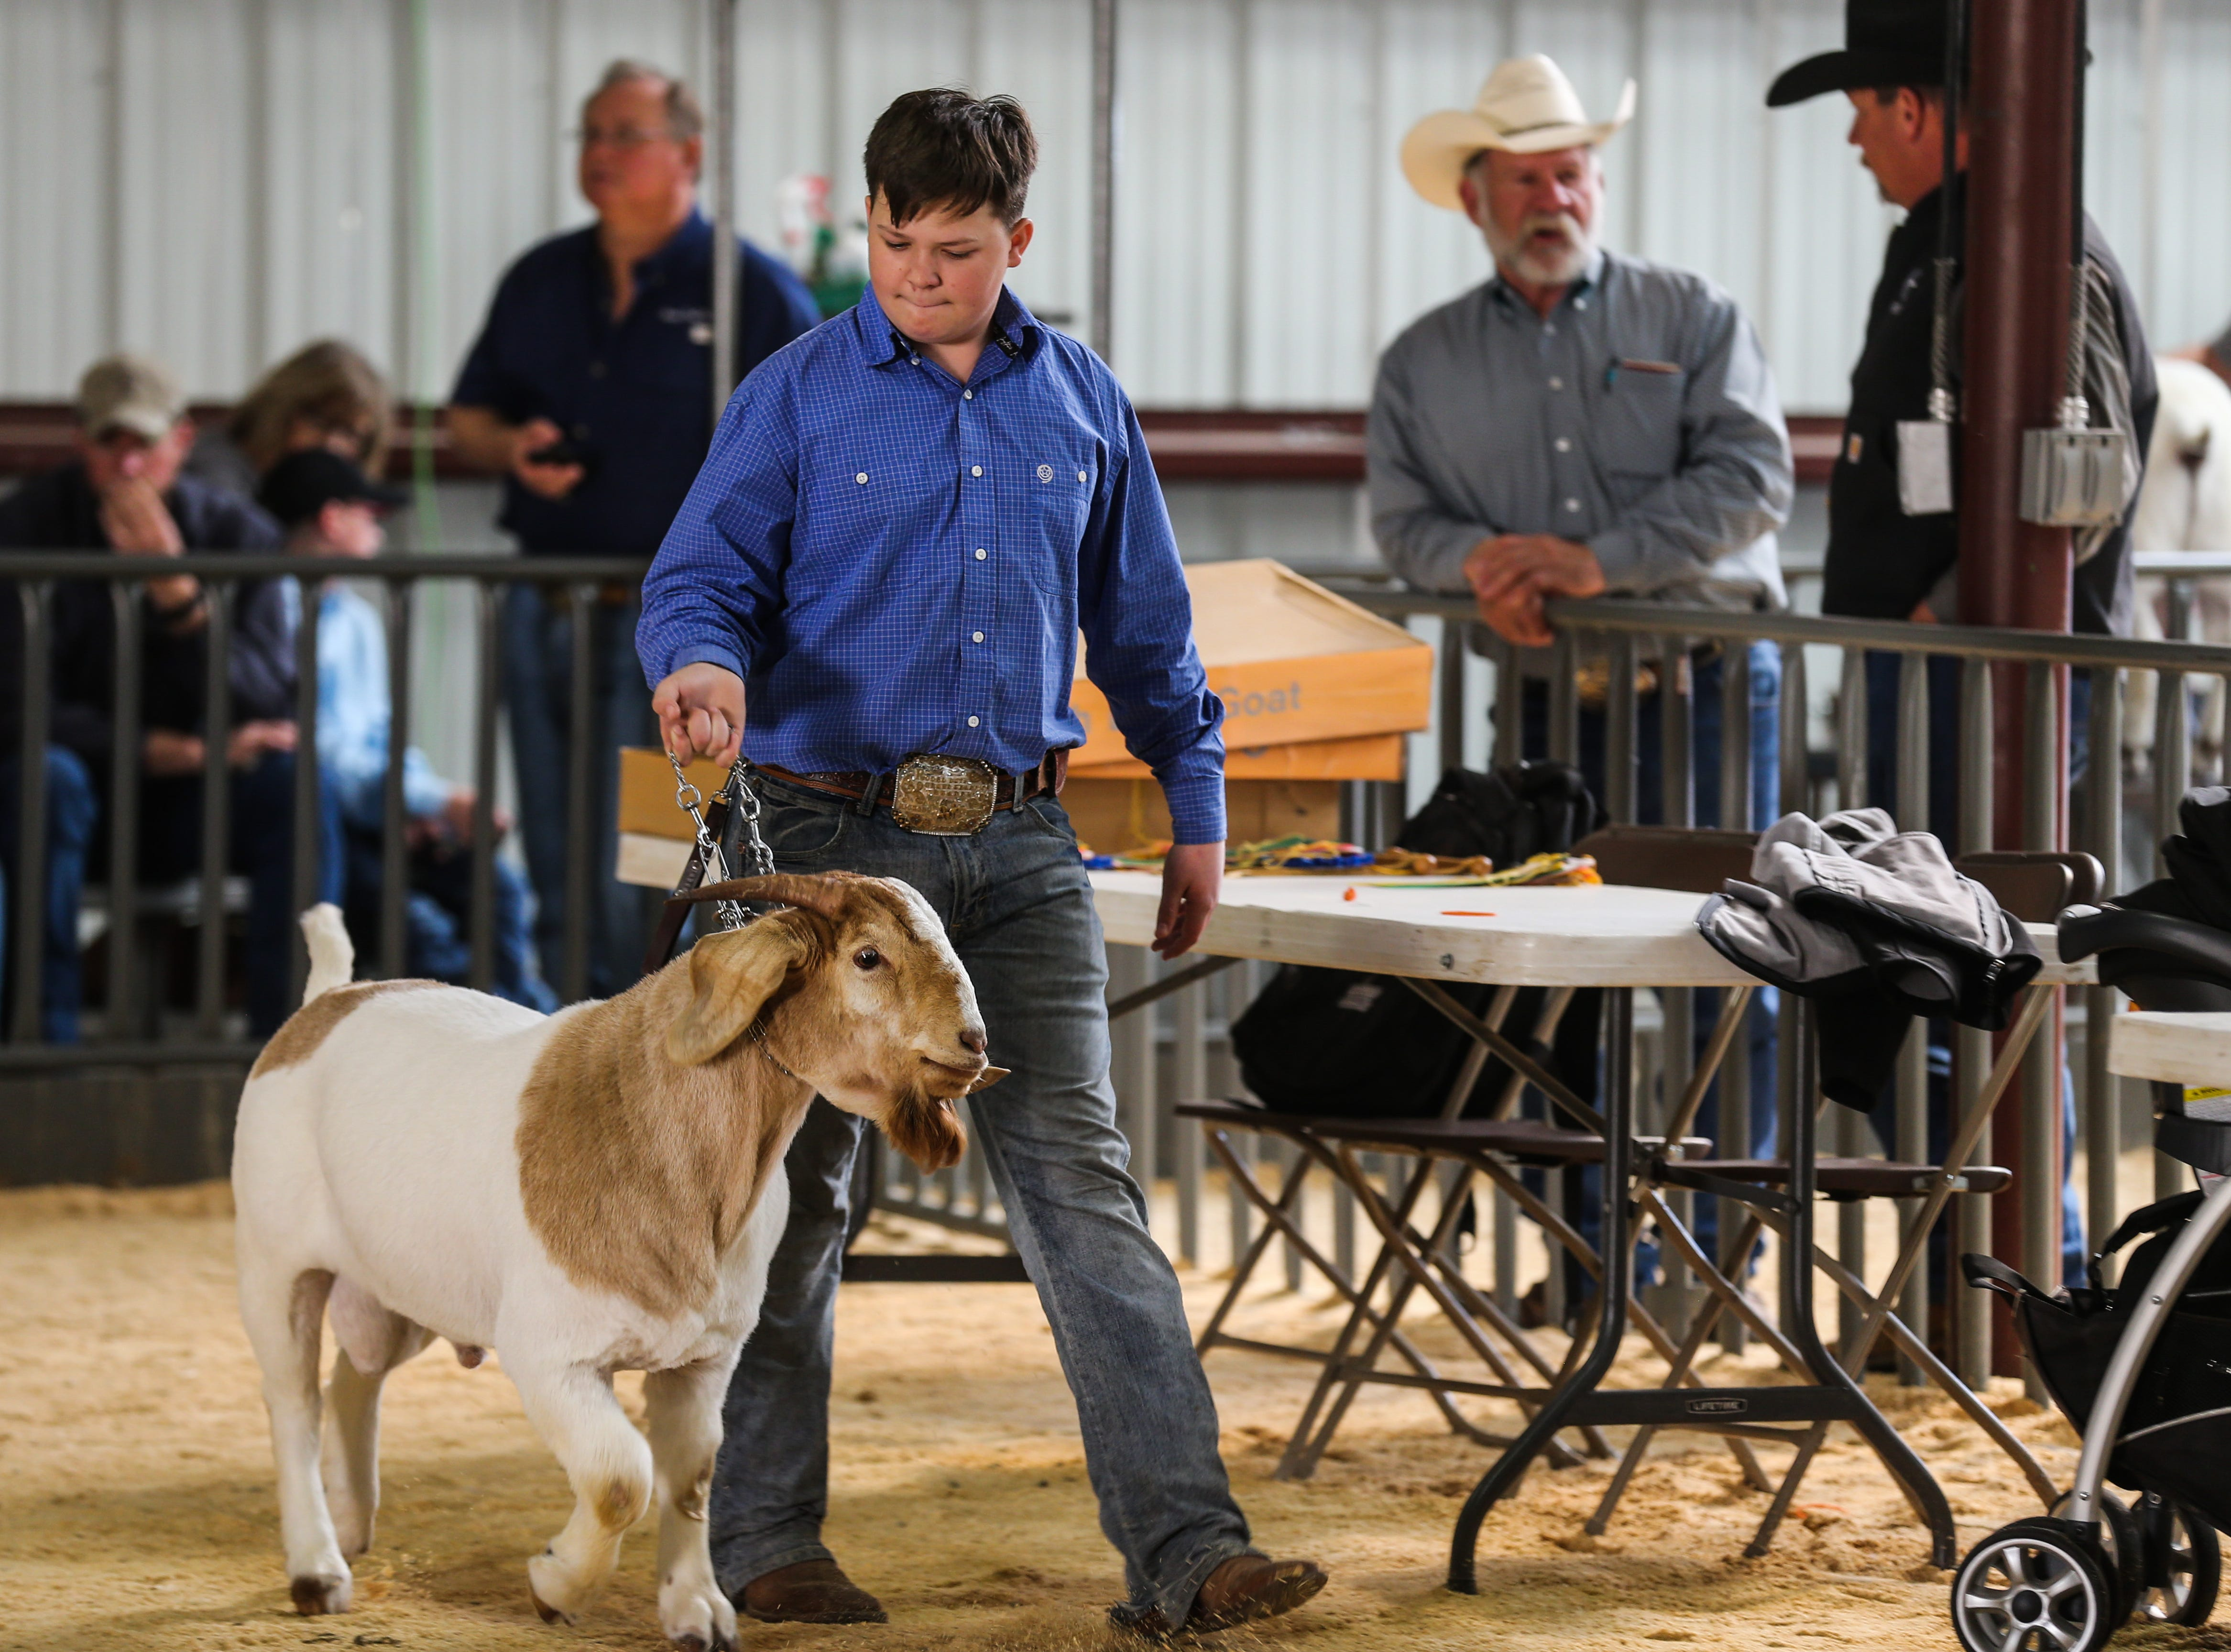 Michael Beets from Odessa walks his boer goat during the open show during San Angelo Stock Show & Rodeo Tuesday, Feb. 5, 2019, at the at the First Financial Pavilion.